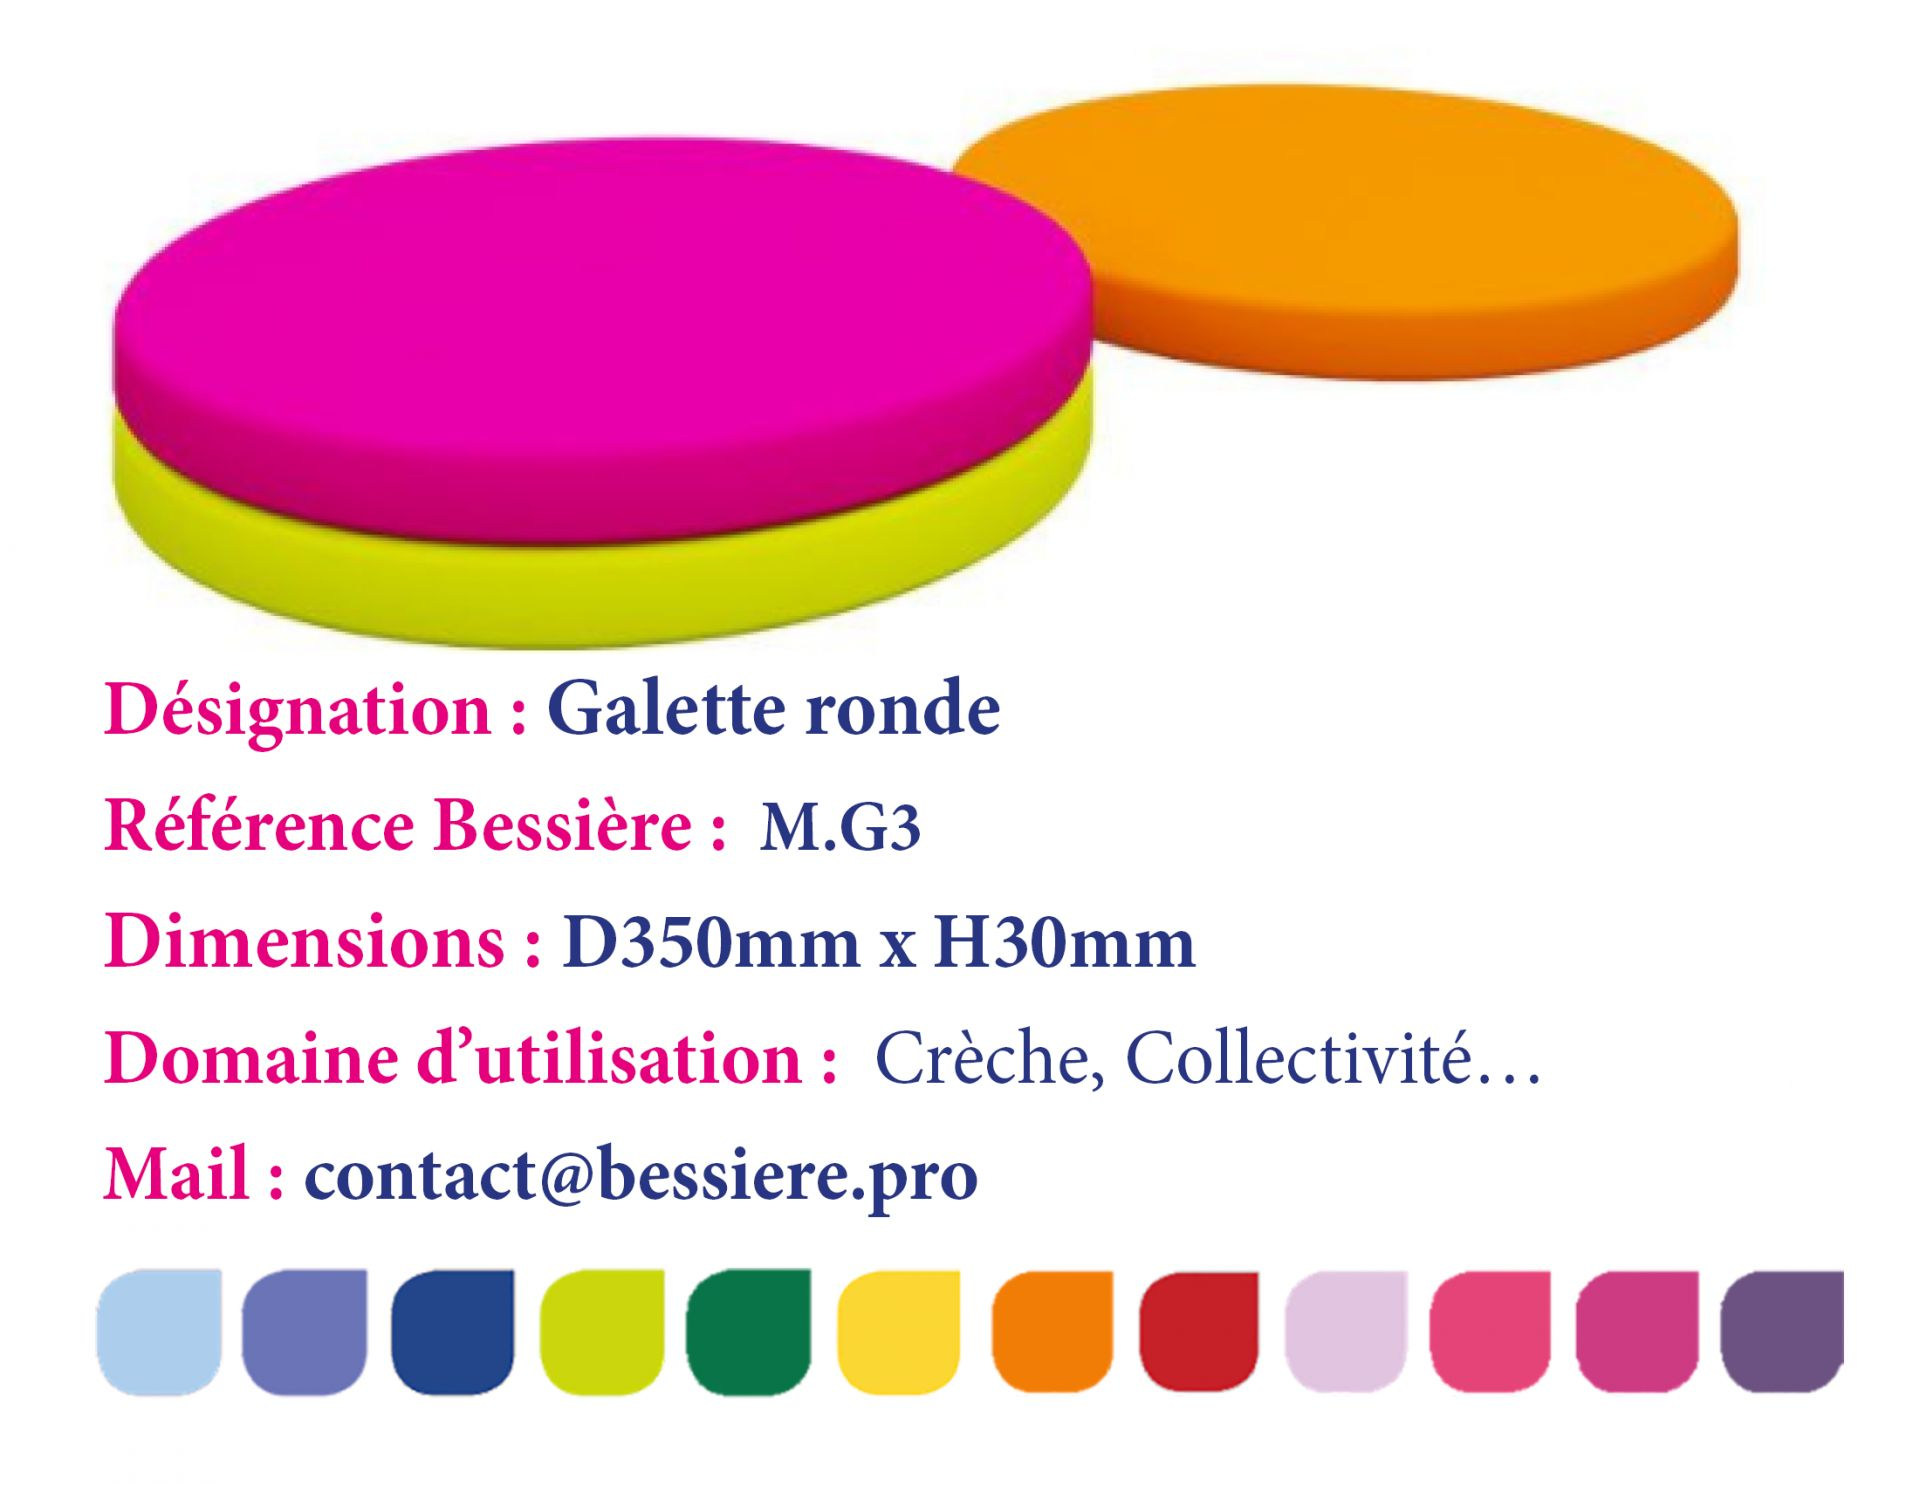 Galette ronde